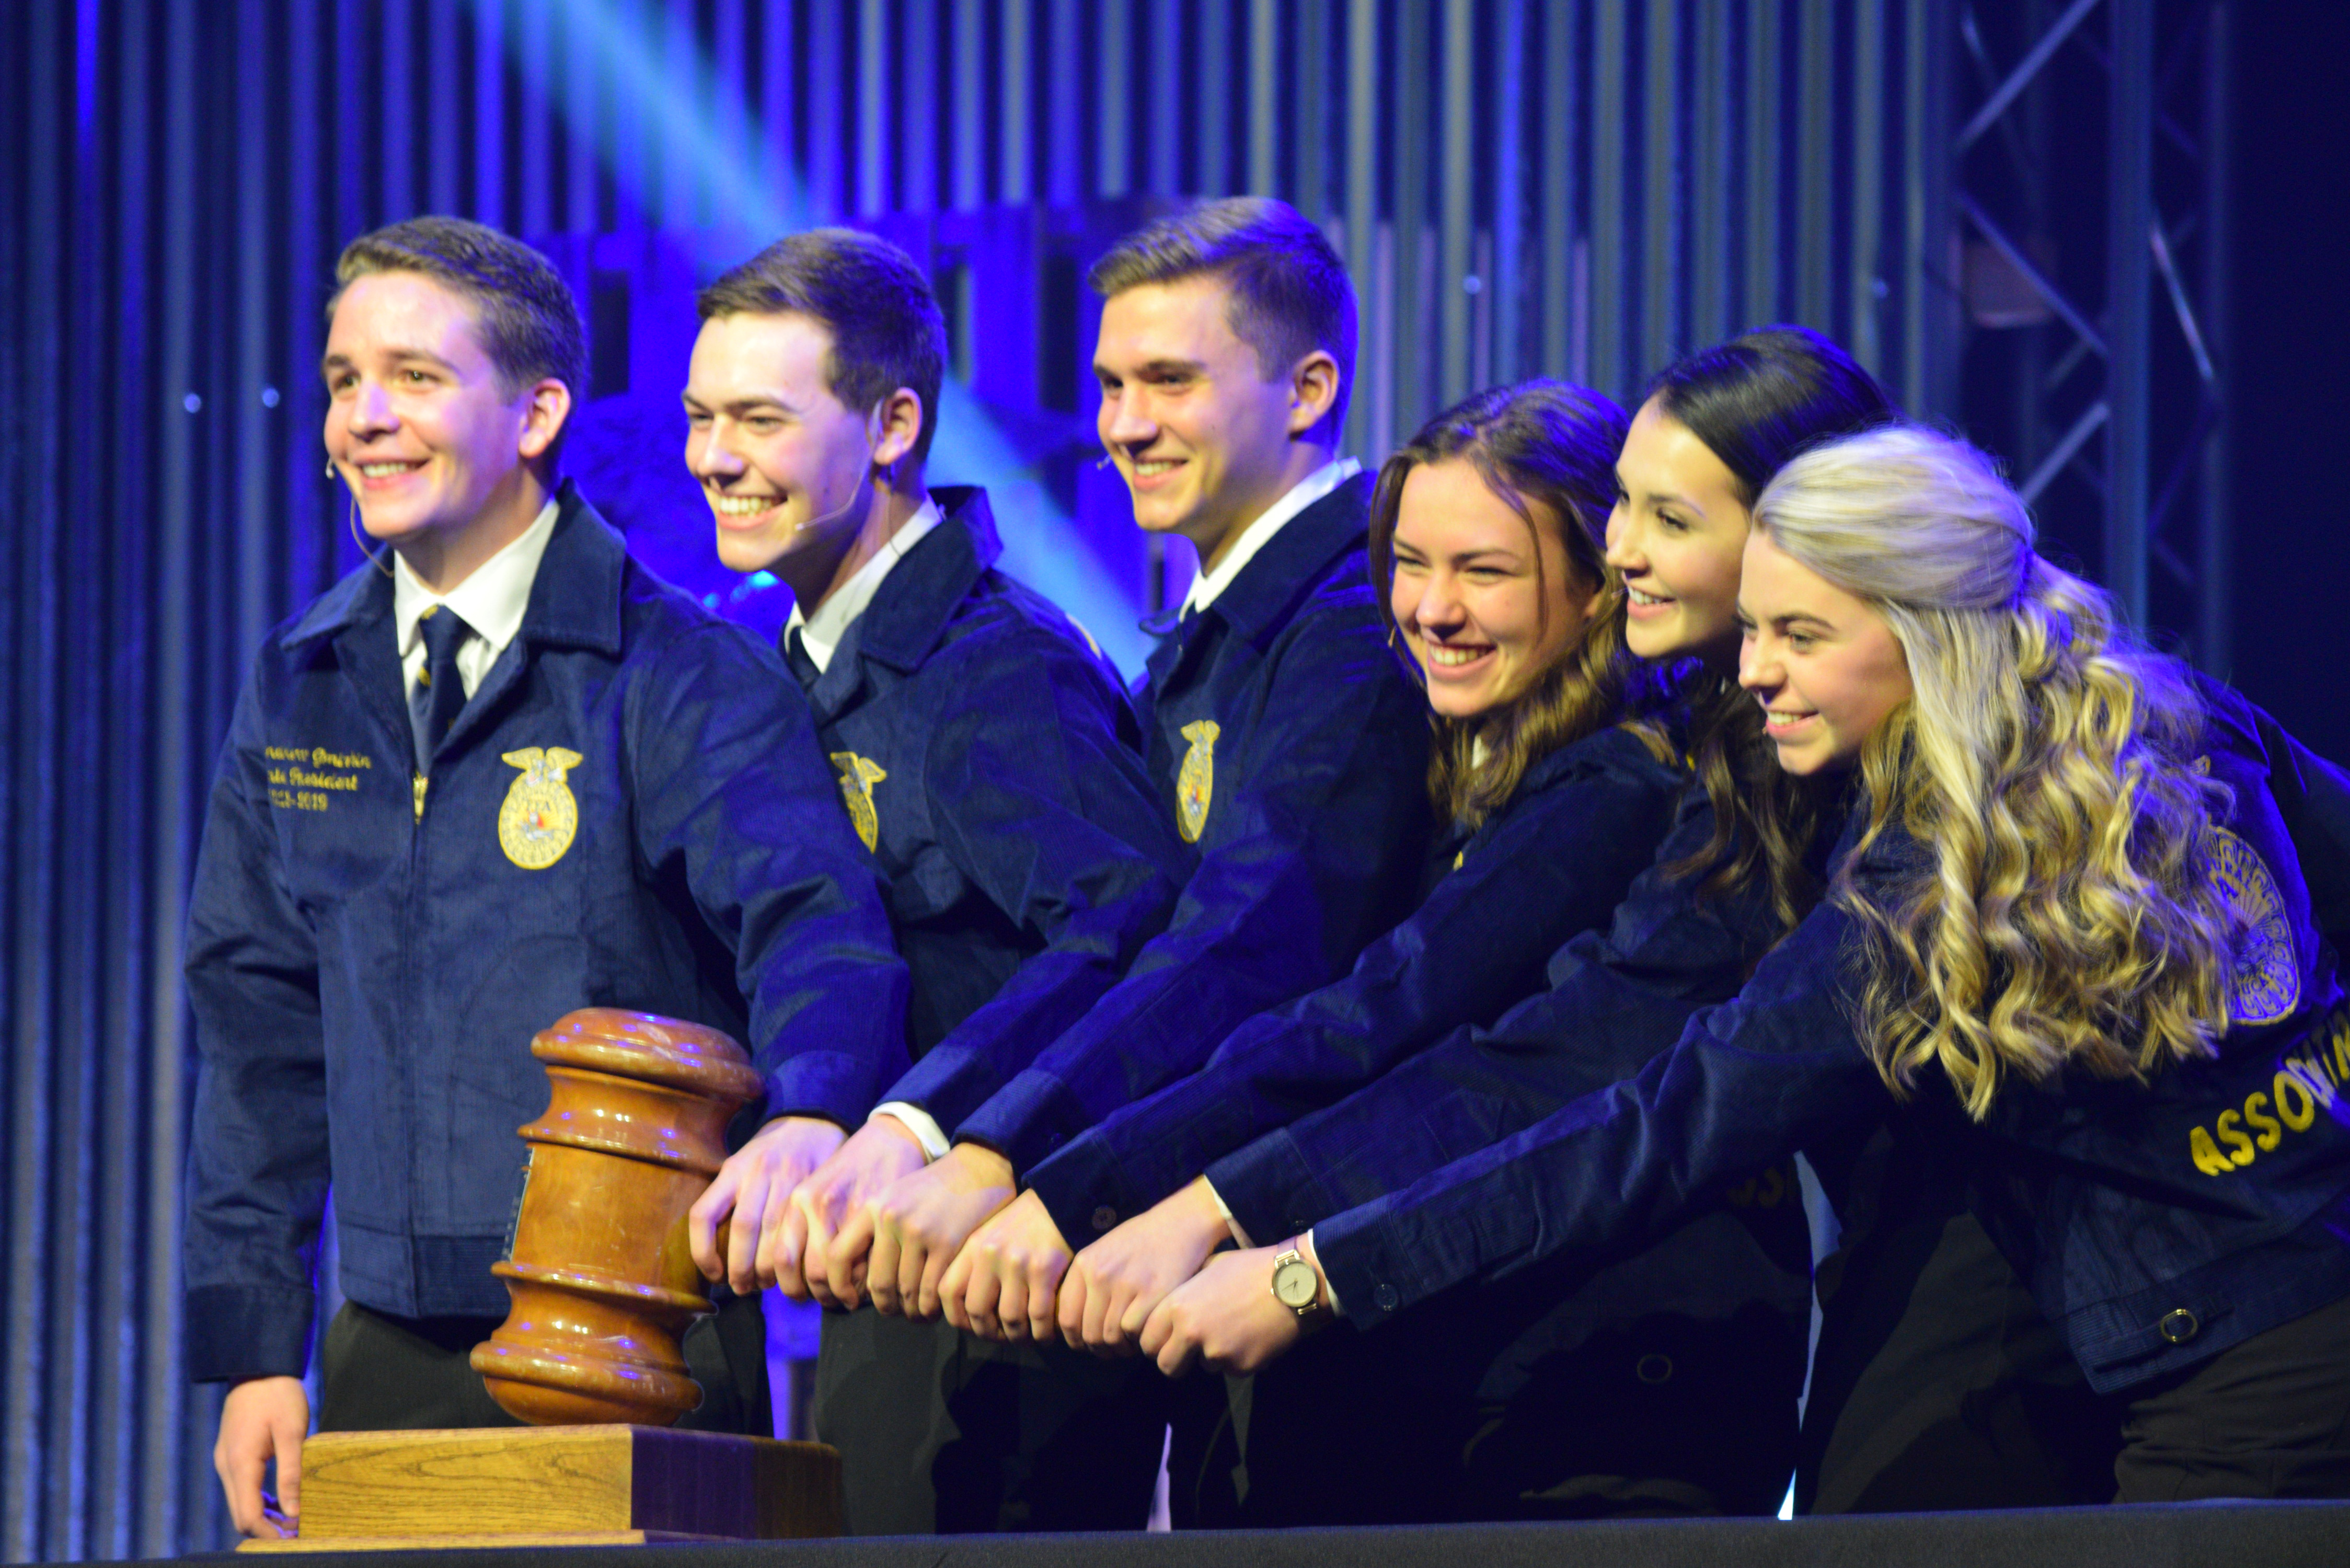 65962b68ed4e Newly elected state reporter Sundee Speelmon, second from right, joins with  the other newly elected state FFA officers. (Submitted photo)